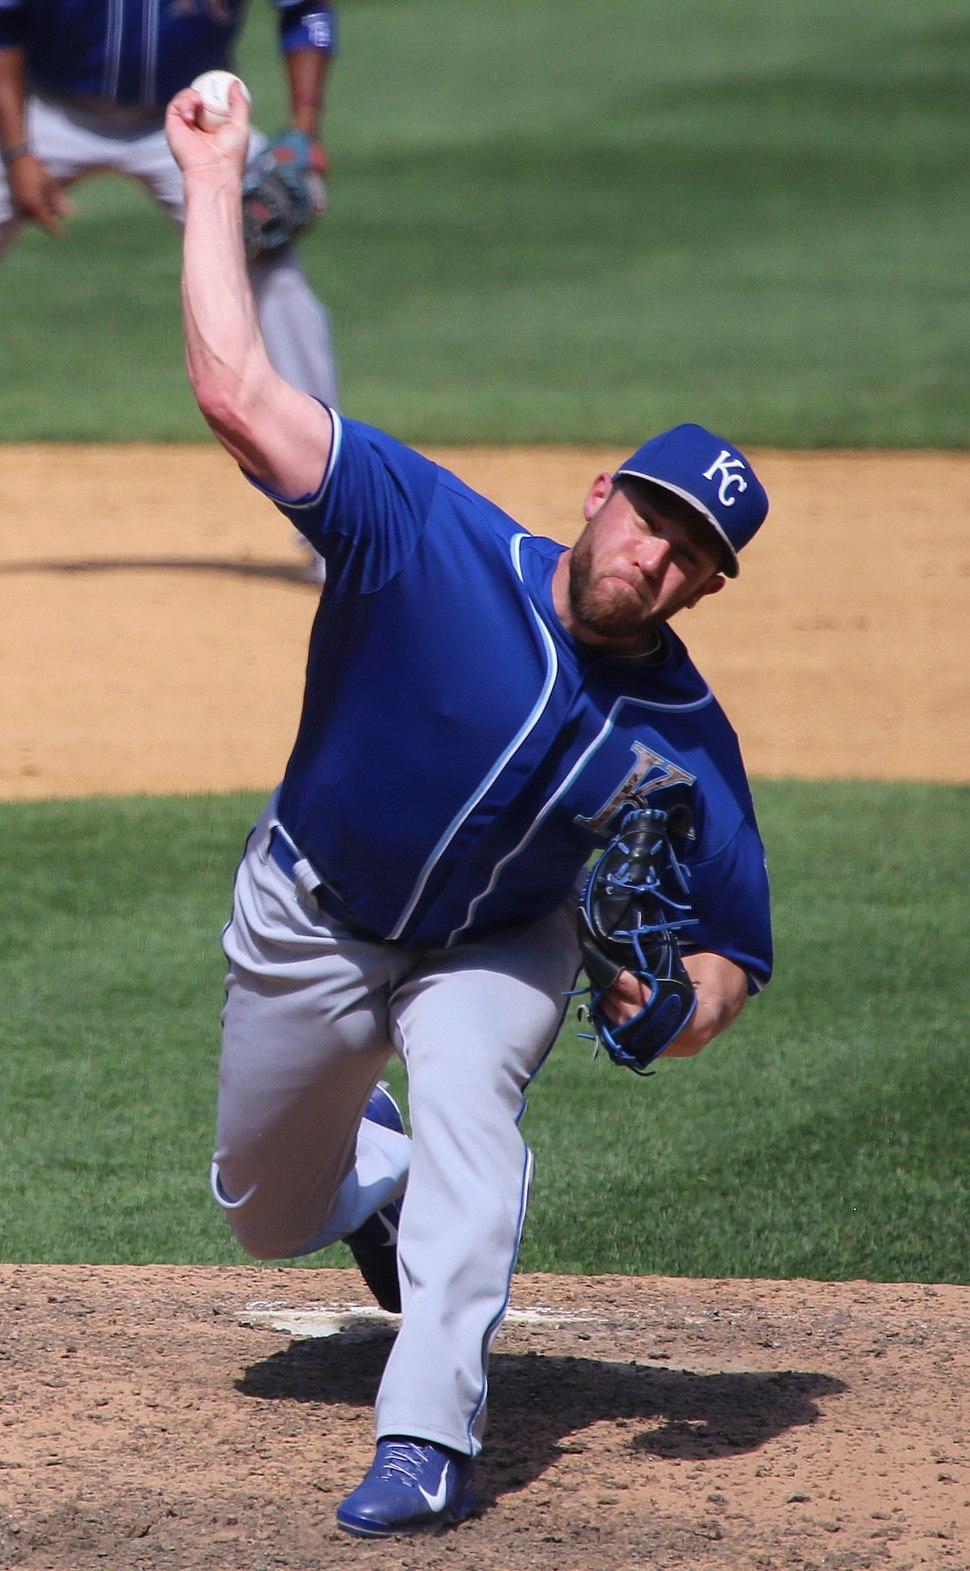 Greg Holland on May 25, 2015